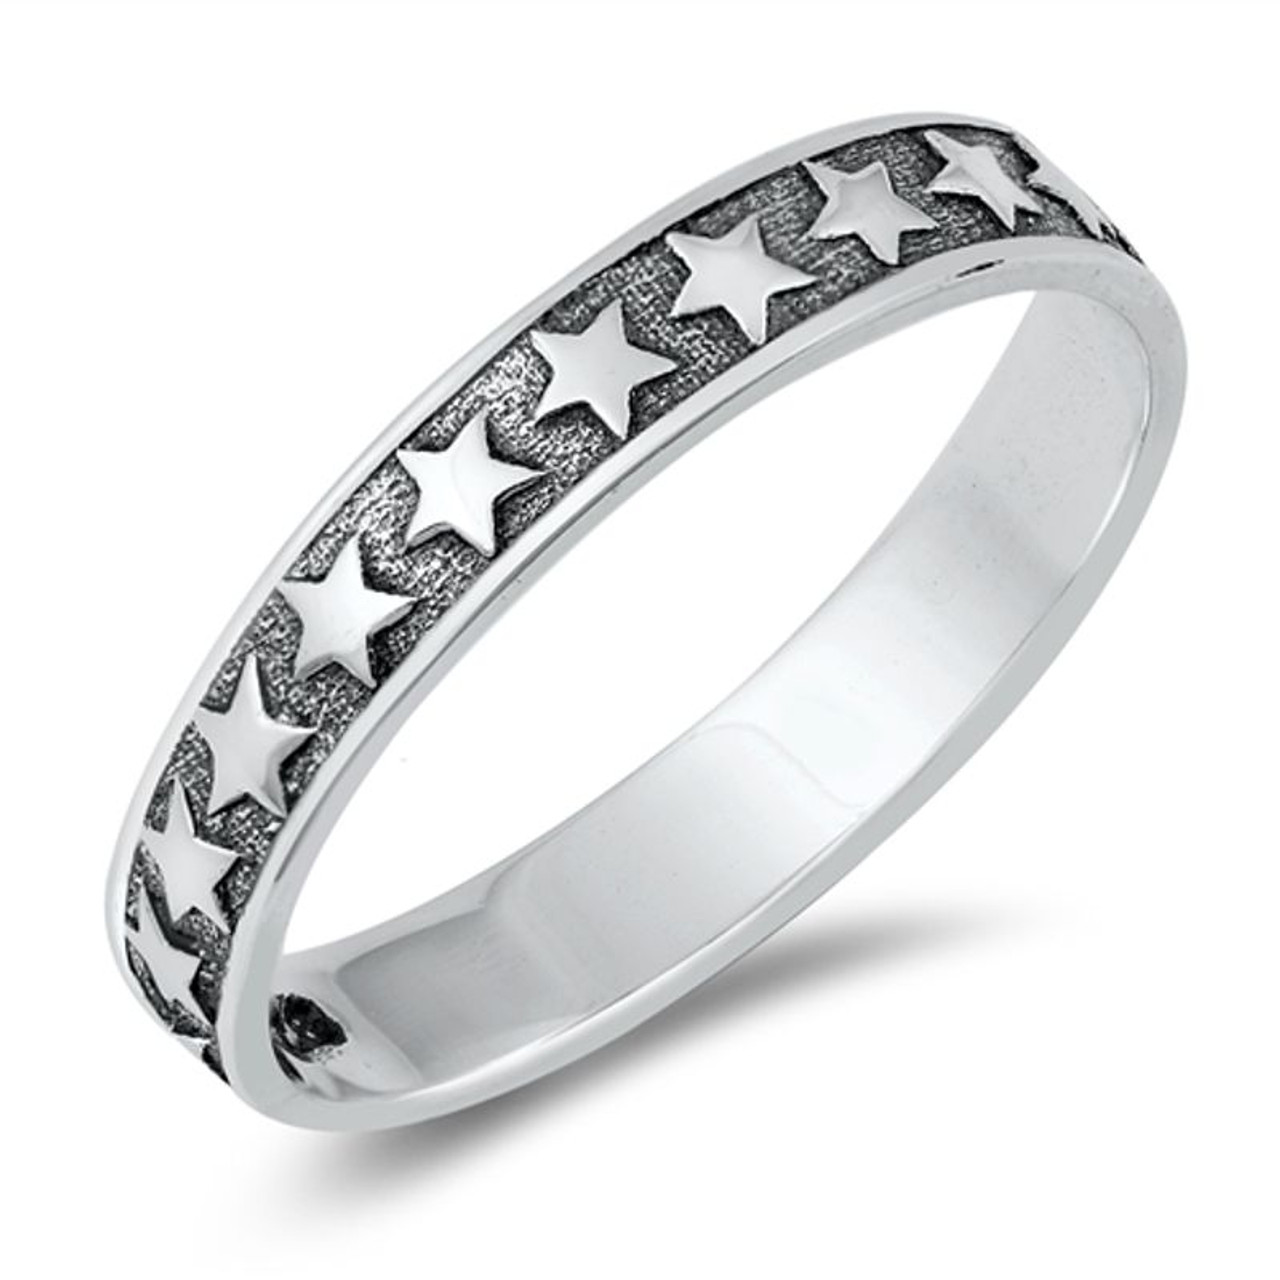 Stainless Steel Matte Finished Comfort Fit Open Ring with Clear CZ